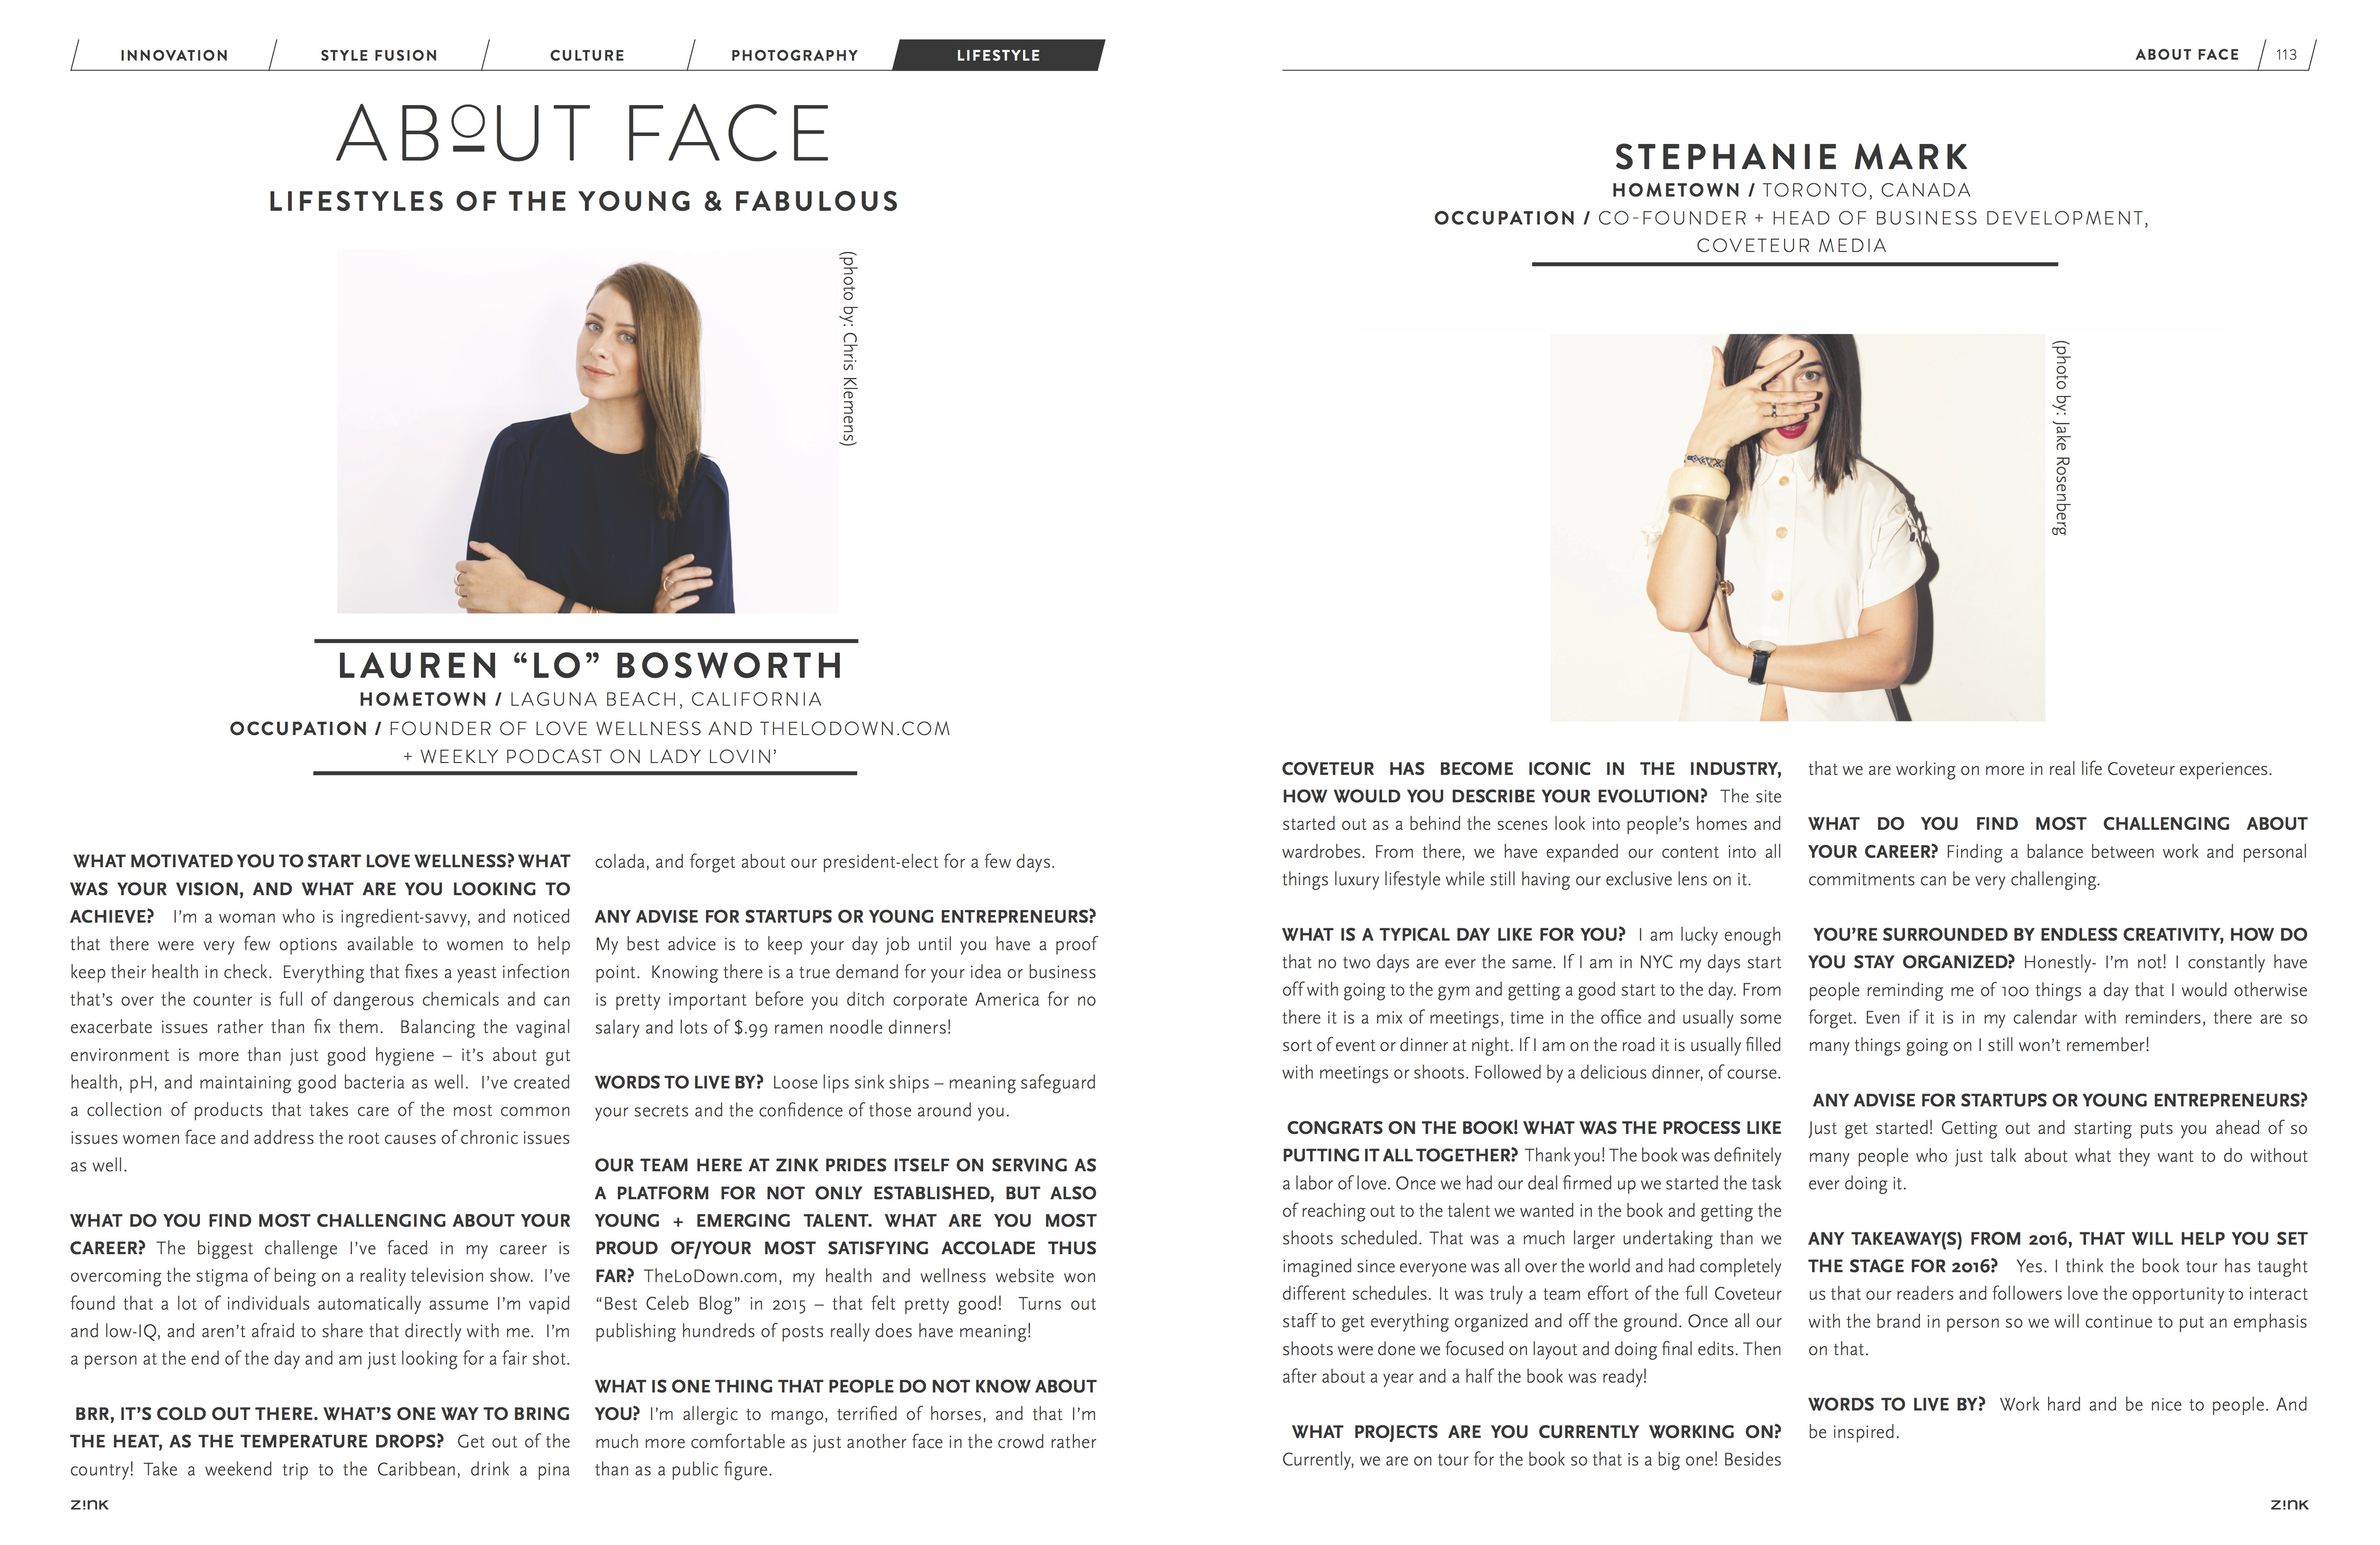 About Face Holiday 2016 - Z!NK